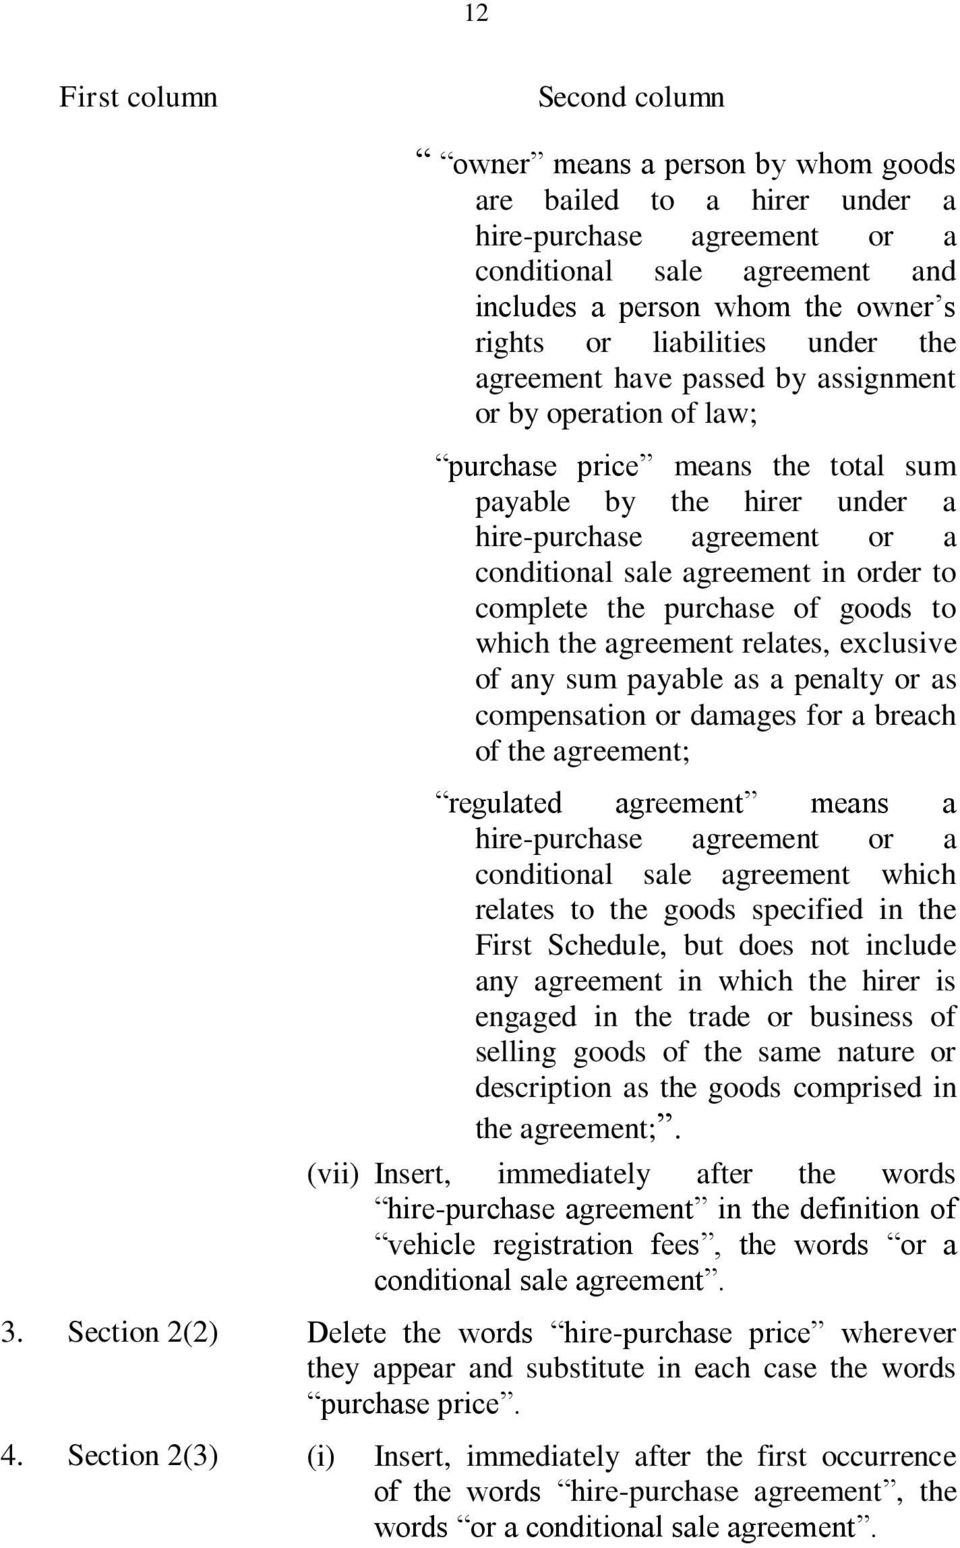 complete the purchase of goods to which the agreement relates, exclusive of any sum payable as a penalty or as compensation or damages for a breach of the agreement; regulated agreement means a